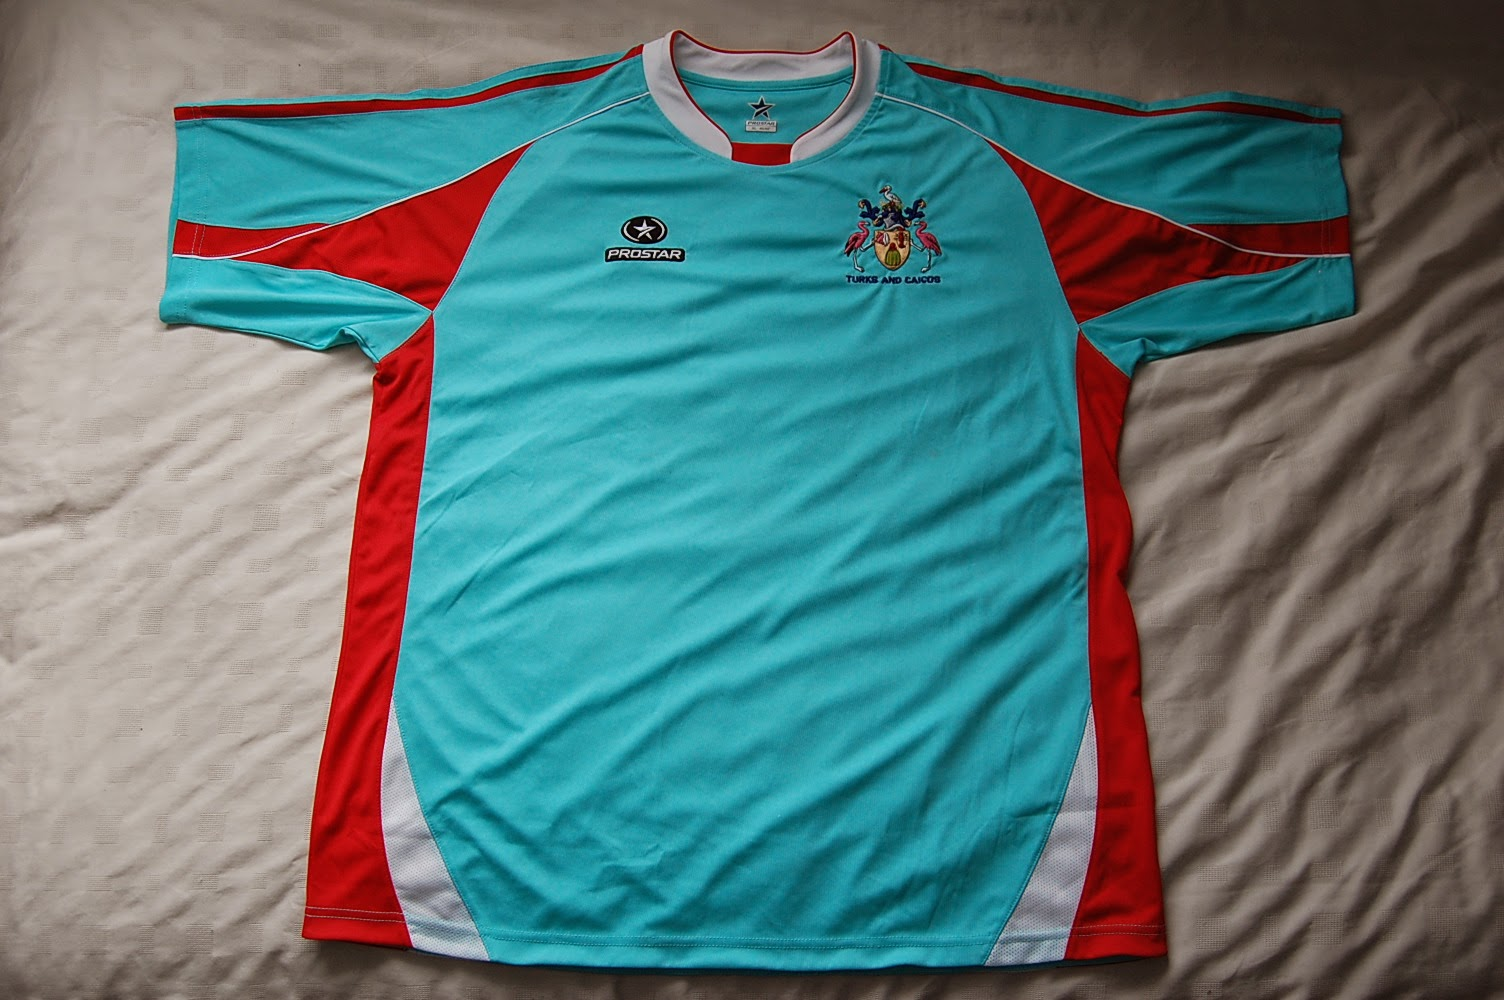 turks and caicos football shirt nationalfootballshirts.com